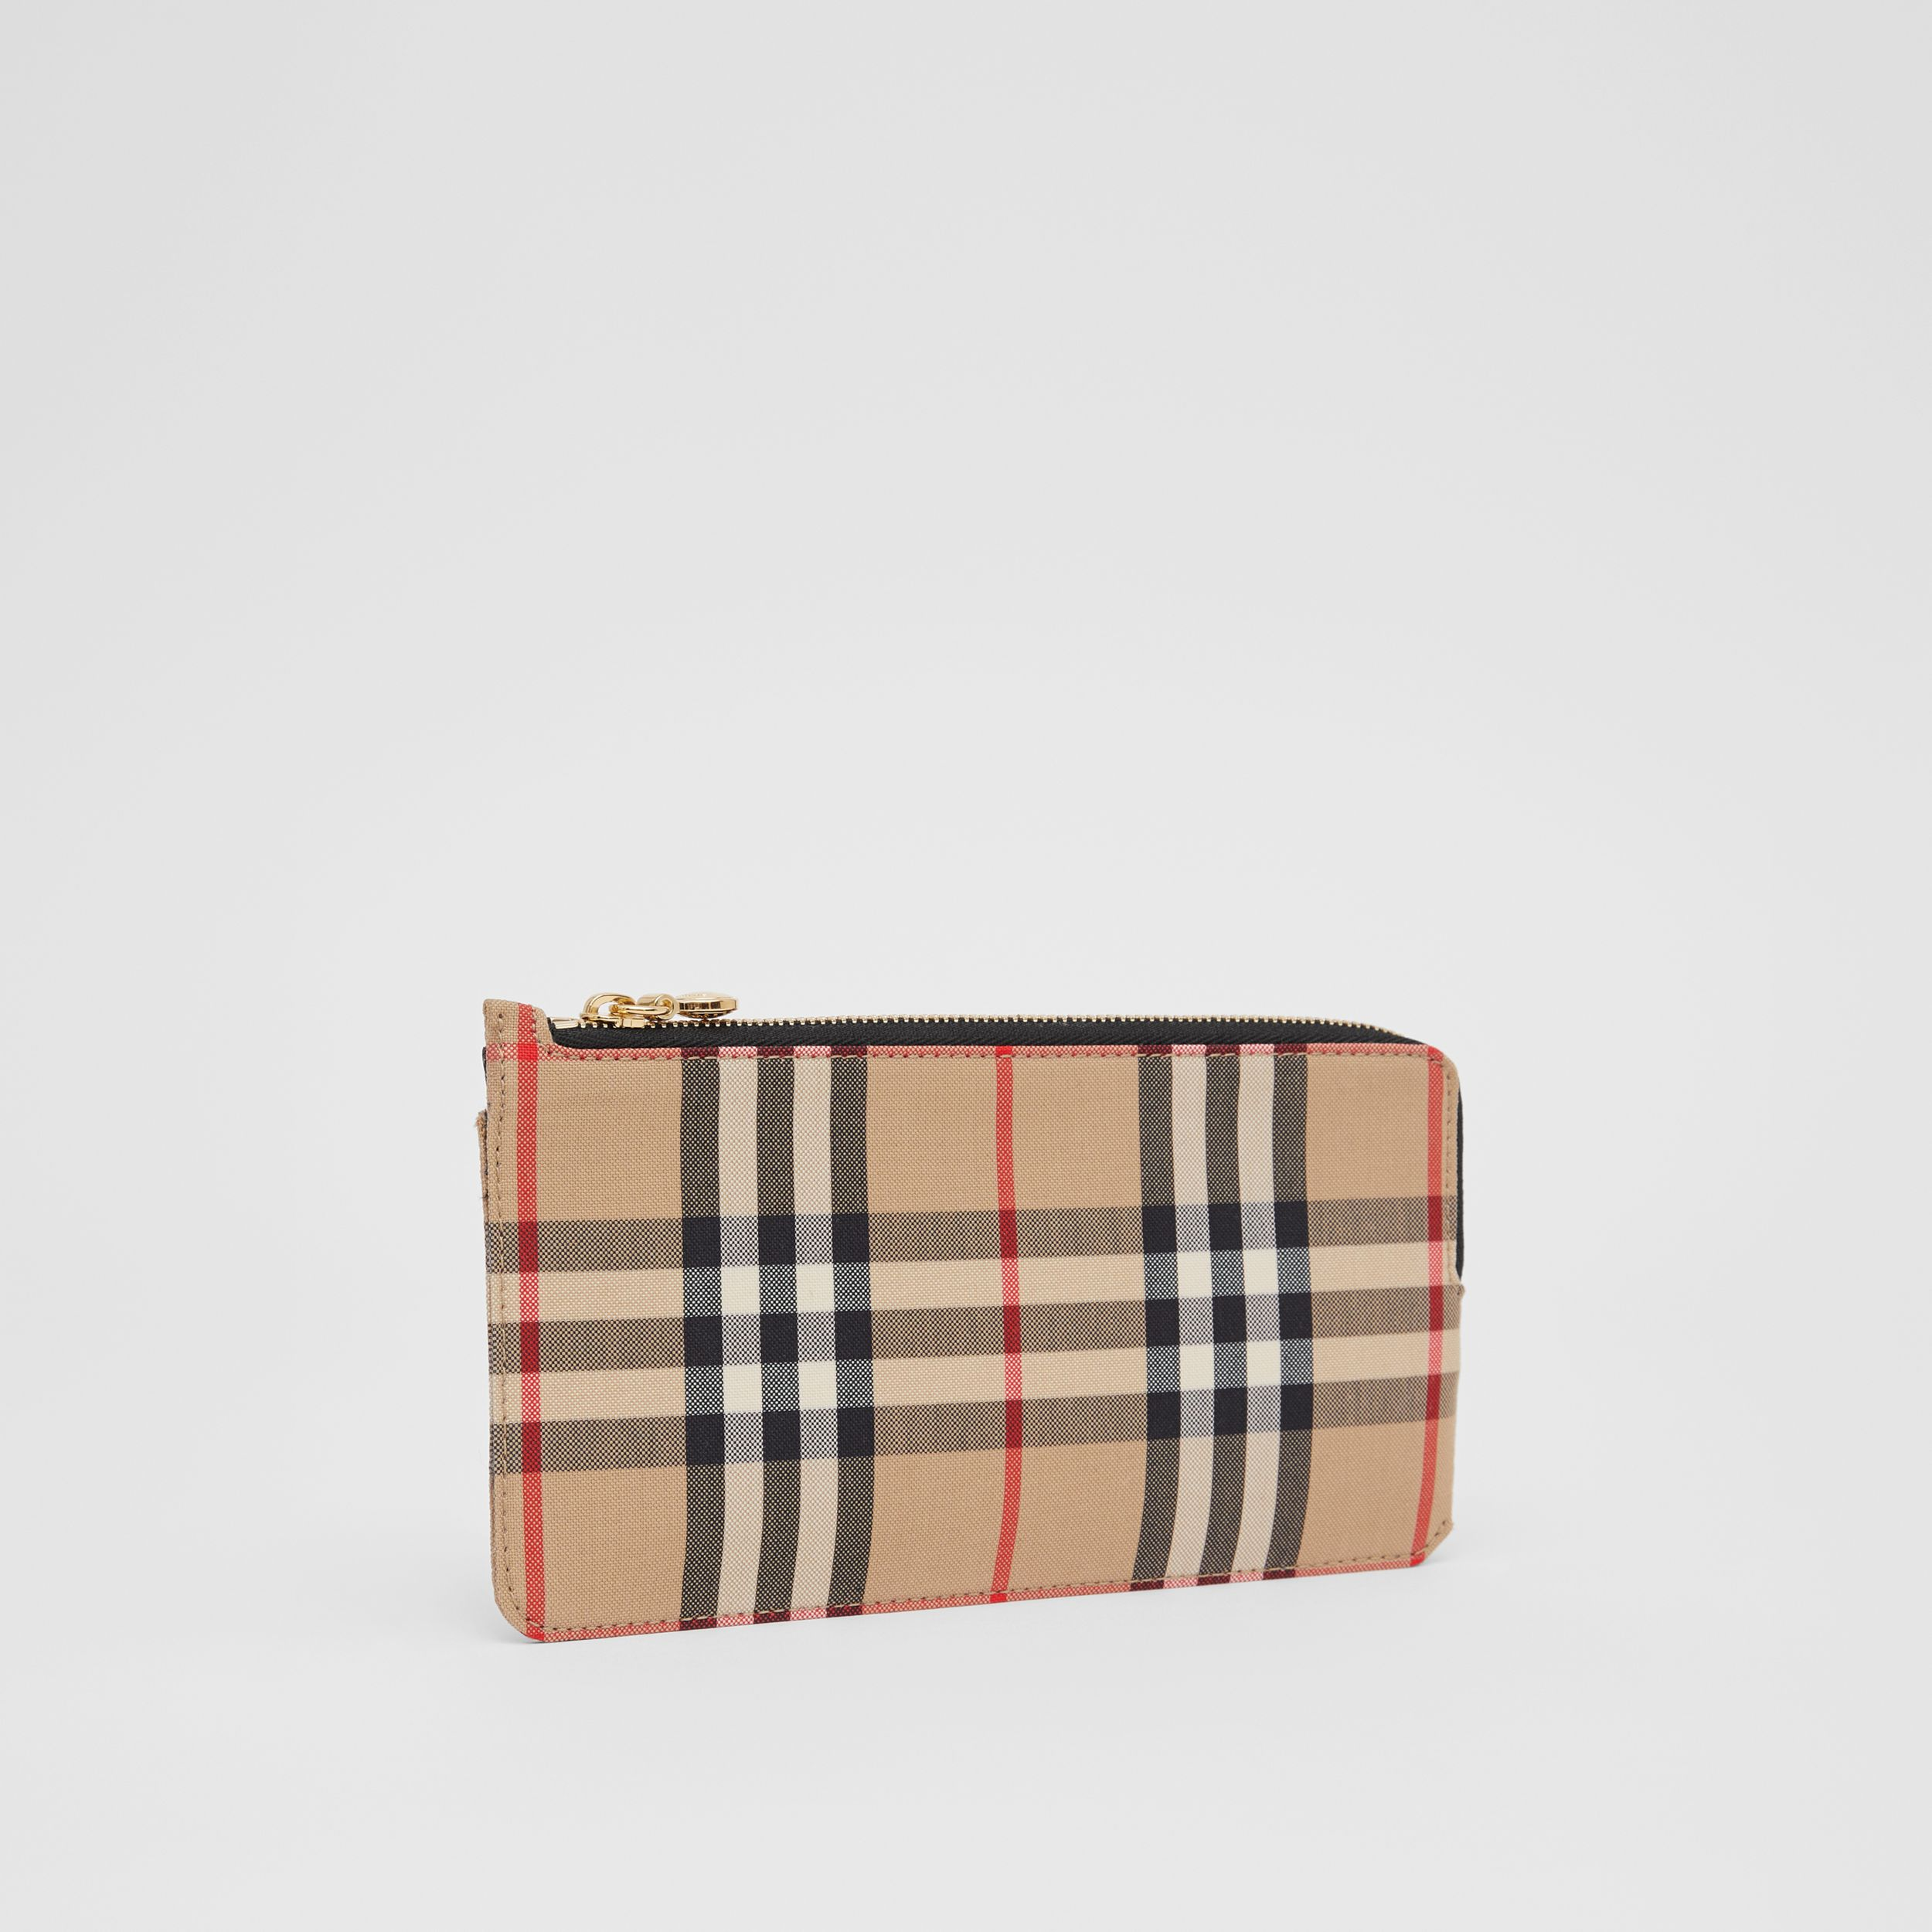 Vintage Check and Leather Phone Wallet in Black - Women | Burberry - 4